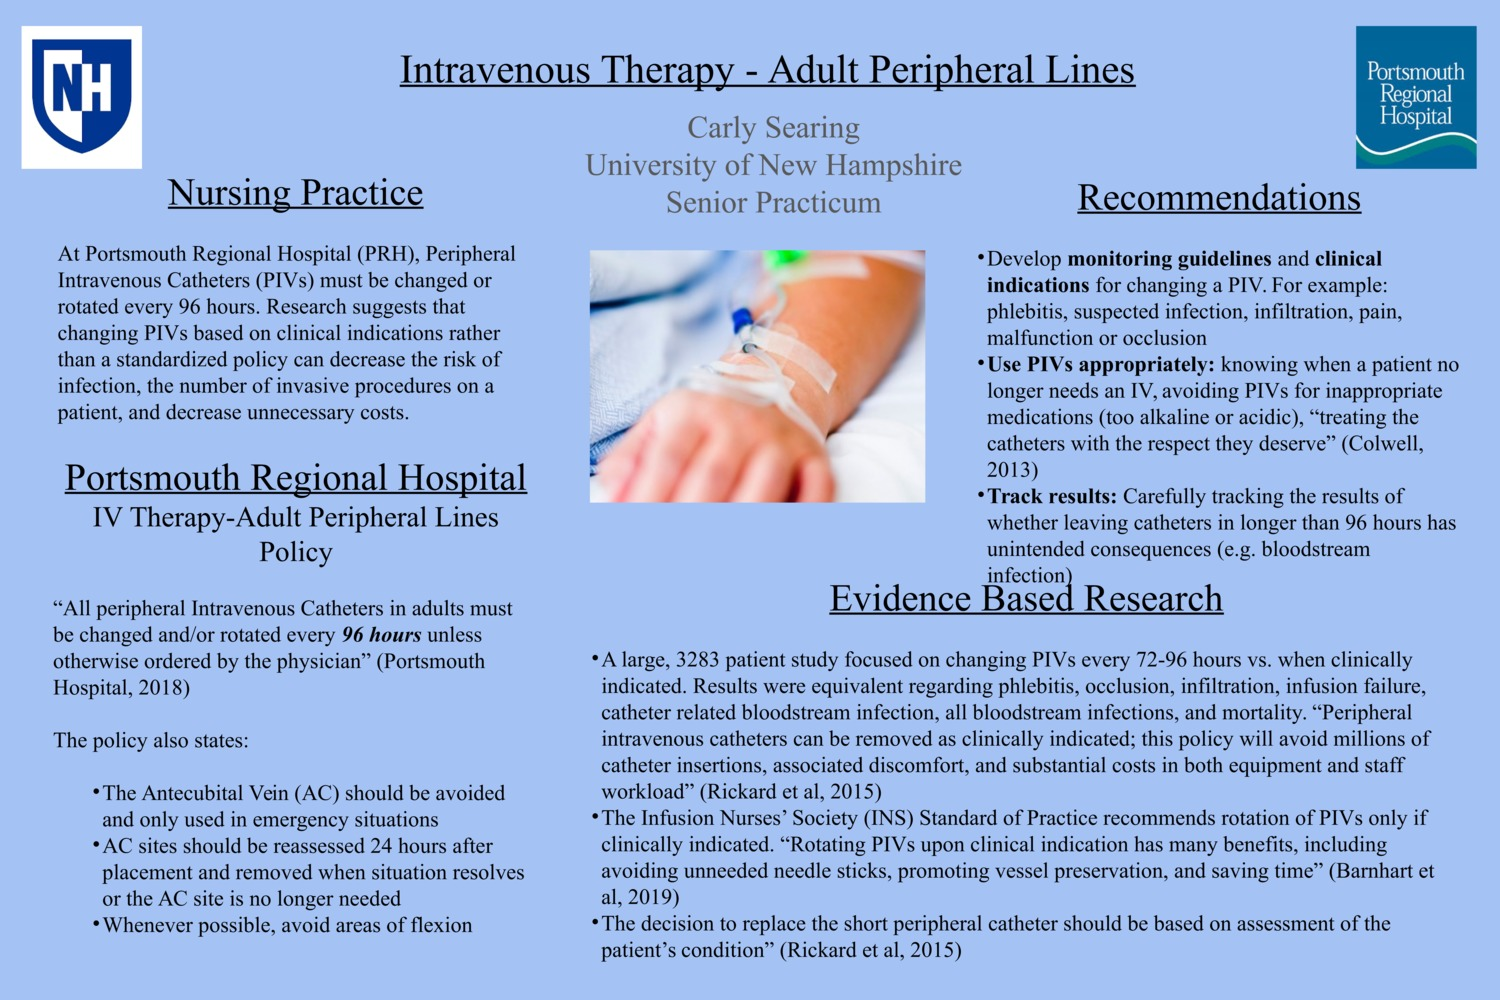 Intravenous Therapy - Adult Peripheral Lines by ces1009